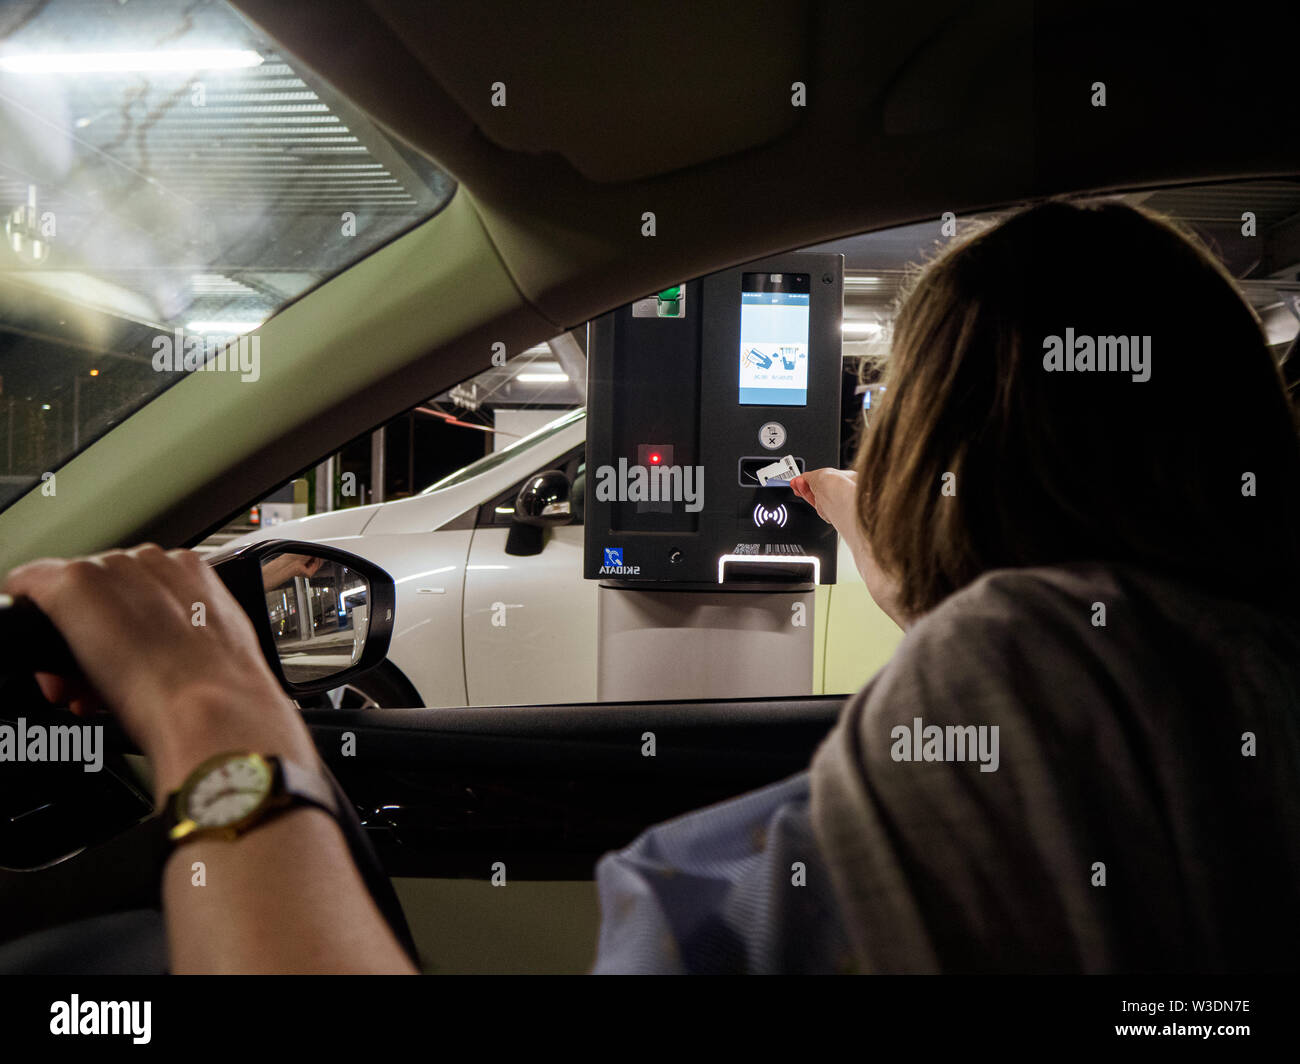 Basel, Switzerland - Jun 5, 2018: Rear view woman inserting ticket in side the barrier ticket machine to exit Basel International Airport parking lot Stock Photo